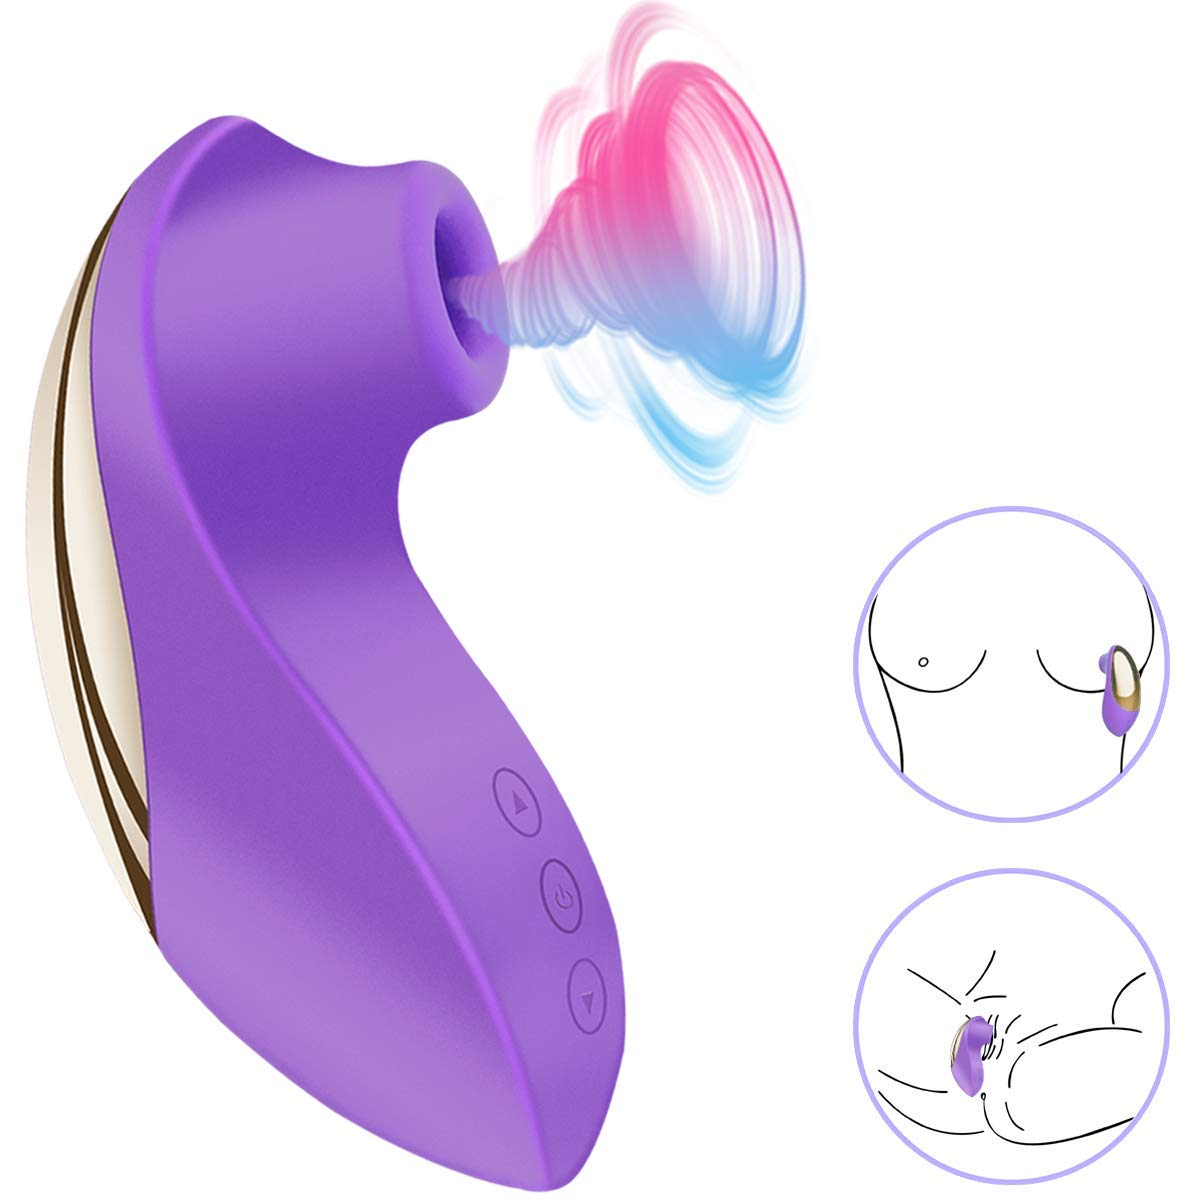 BOMBEX Clitoral Sucking Vibrator - Clit Sucker with 10 Frequencies| Waterproof Rechargeable Nipple Stimulator| Oral Sex Simulator Sex Toy for Women by BOMBEX